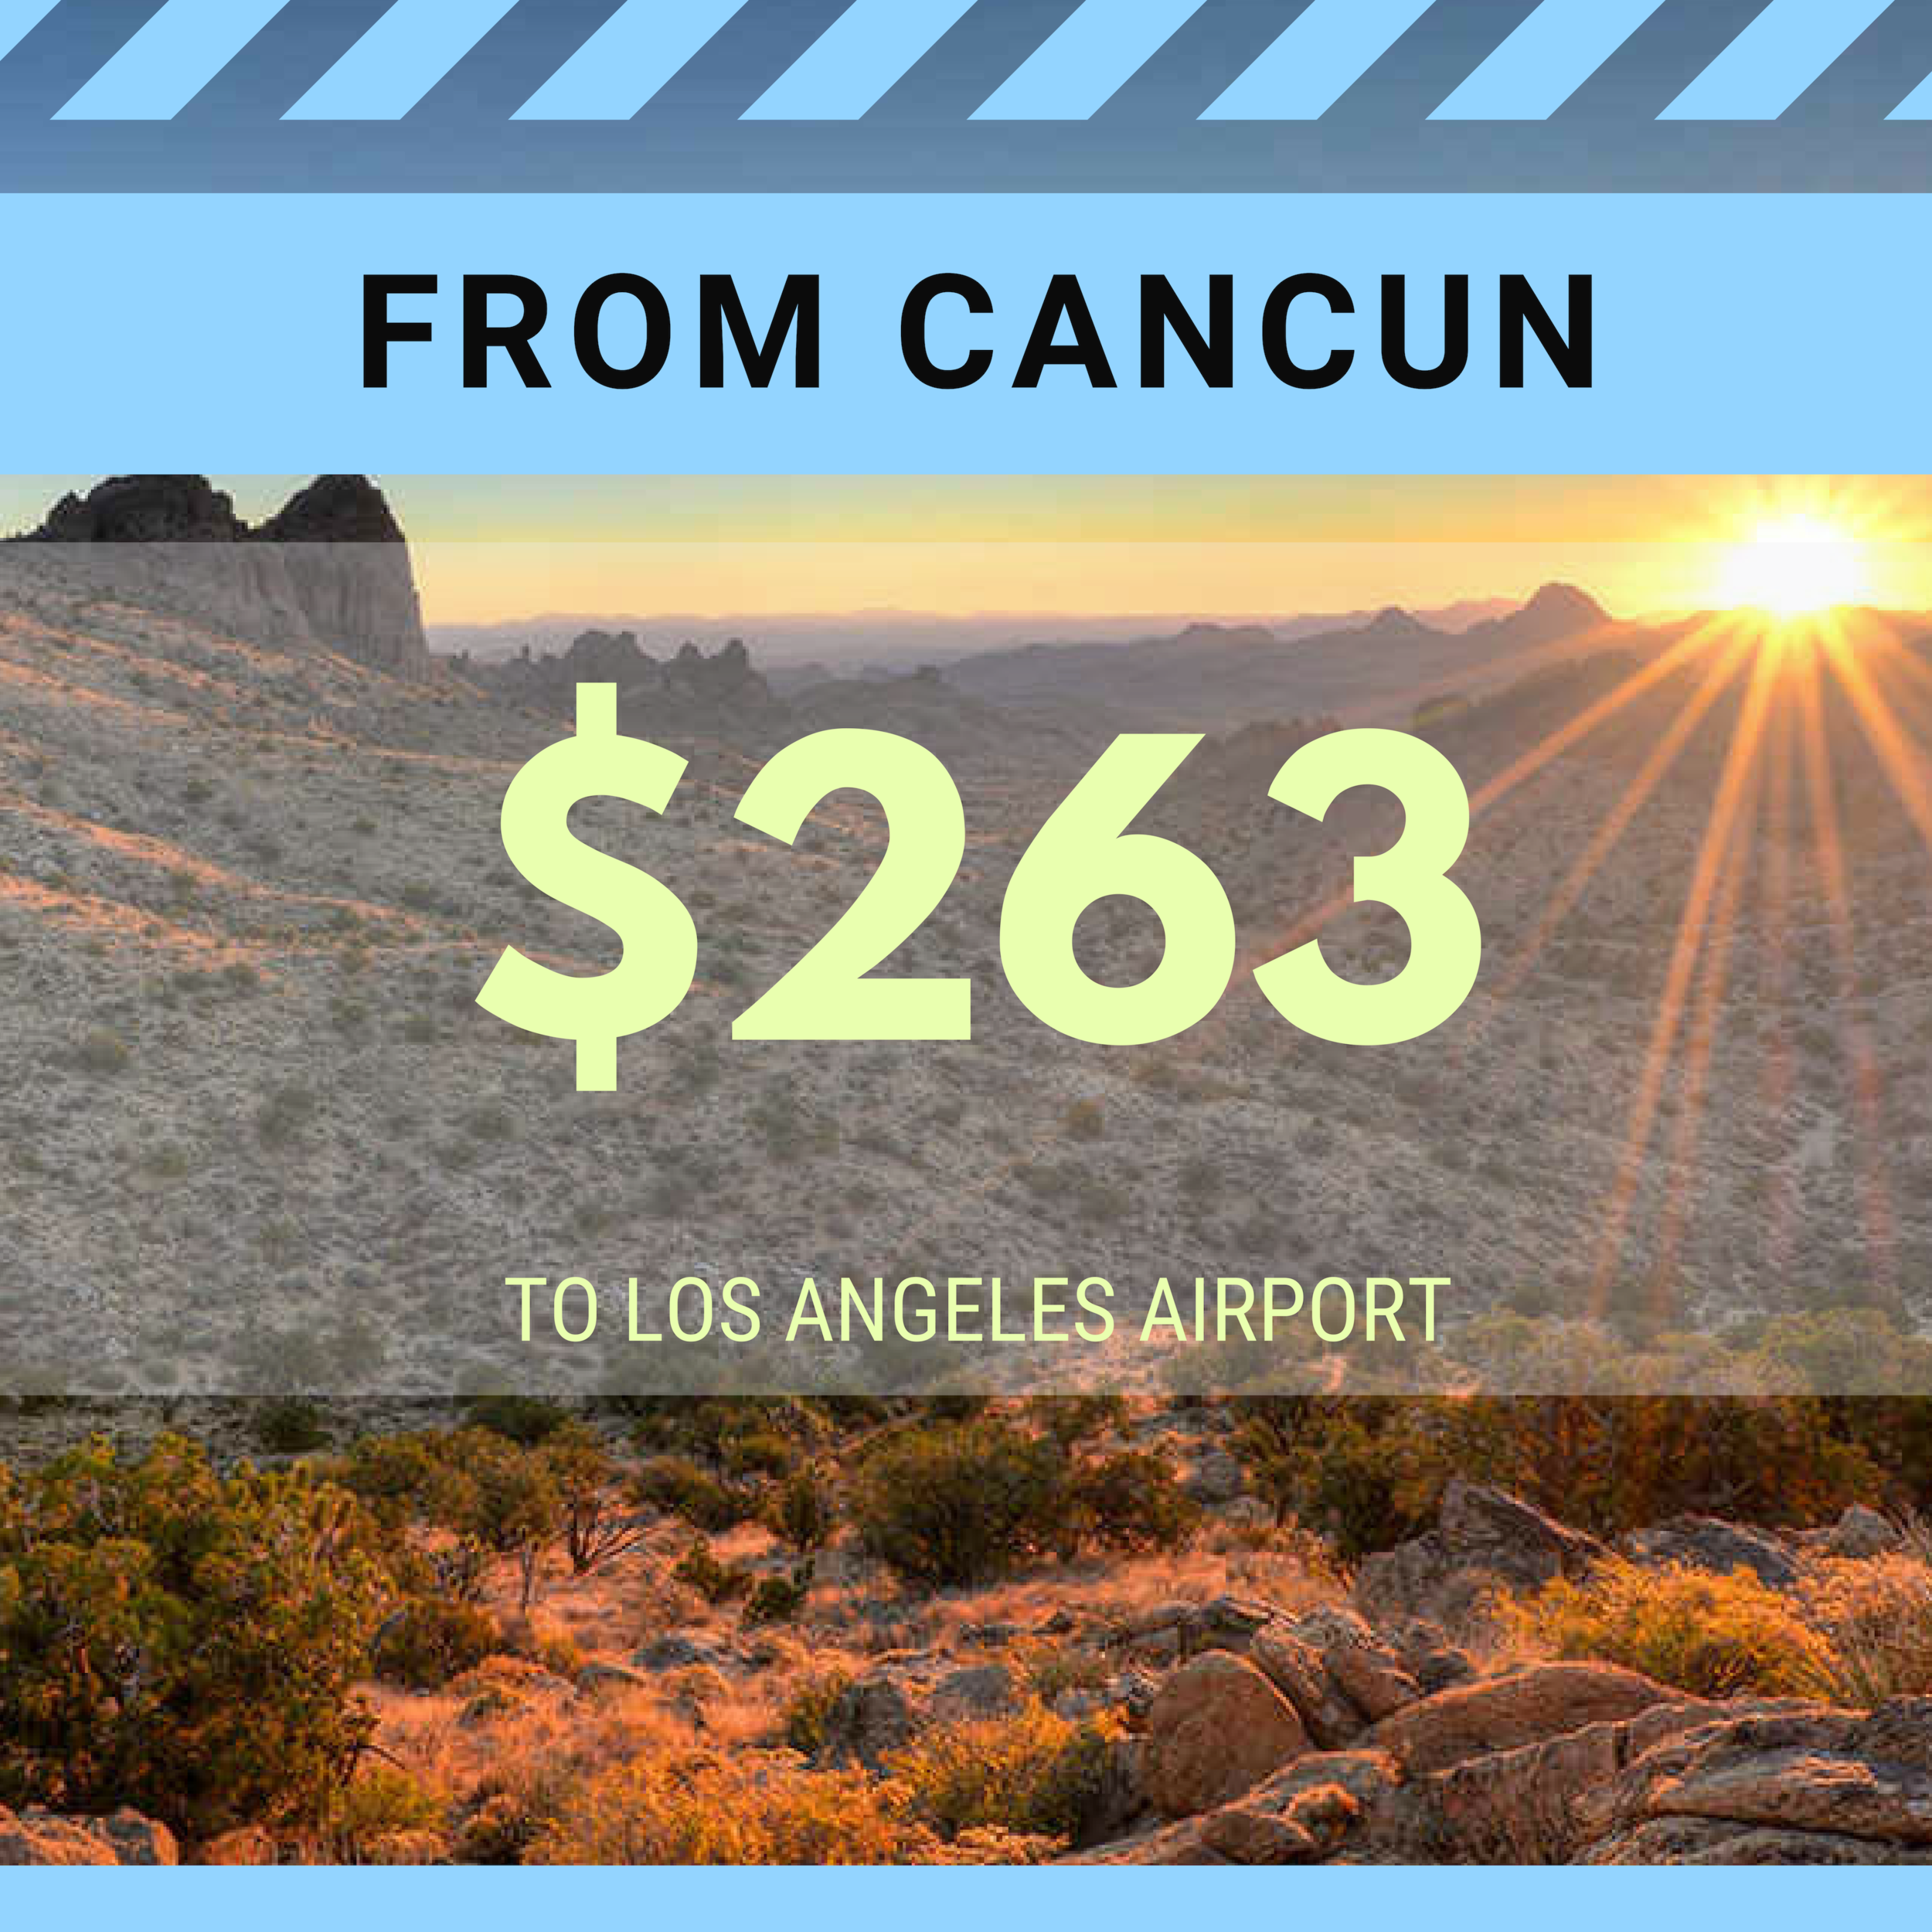 FROM CANCUN TO LAX